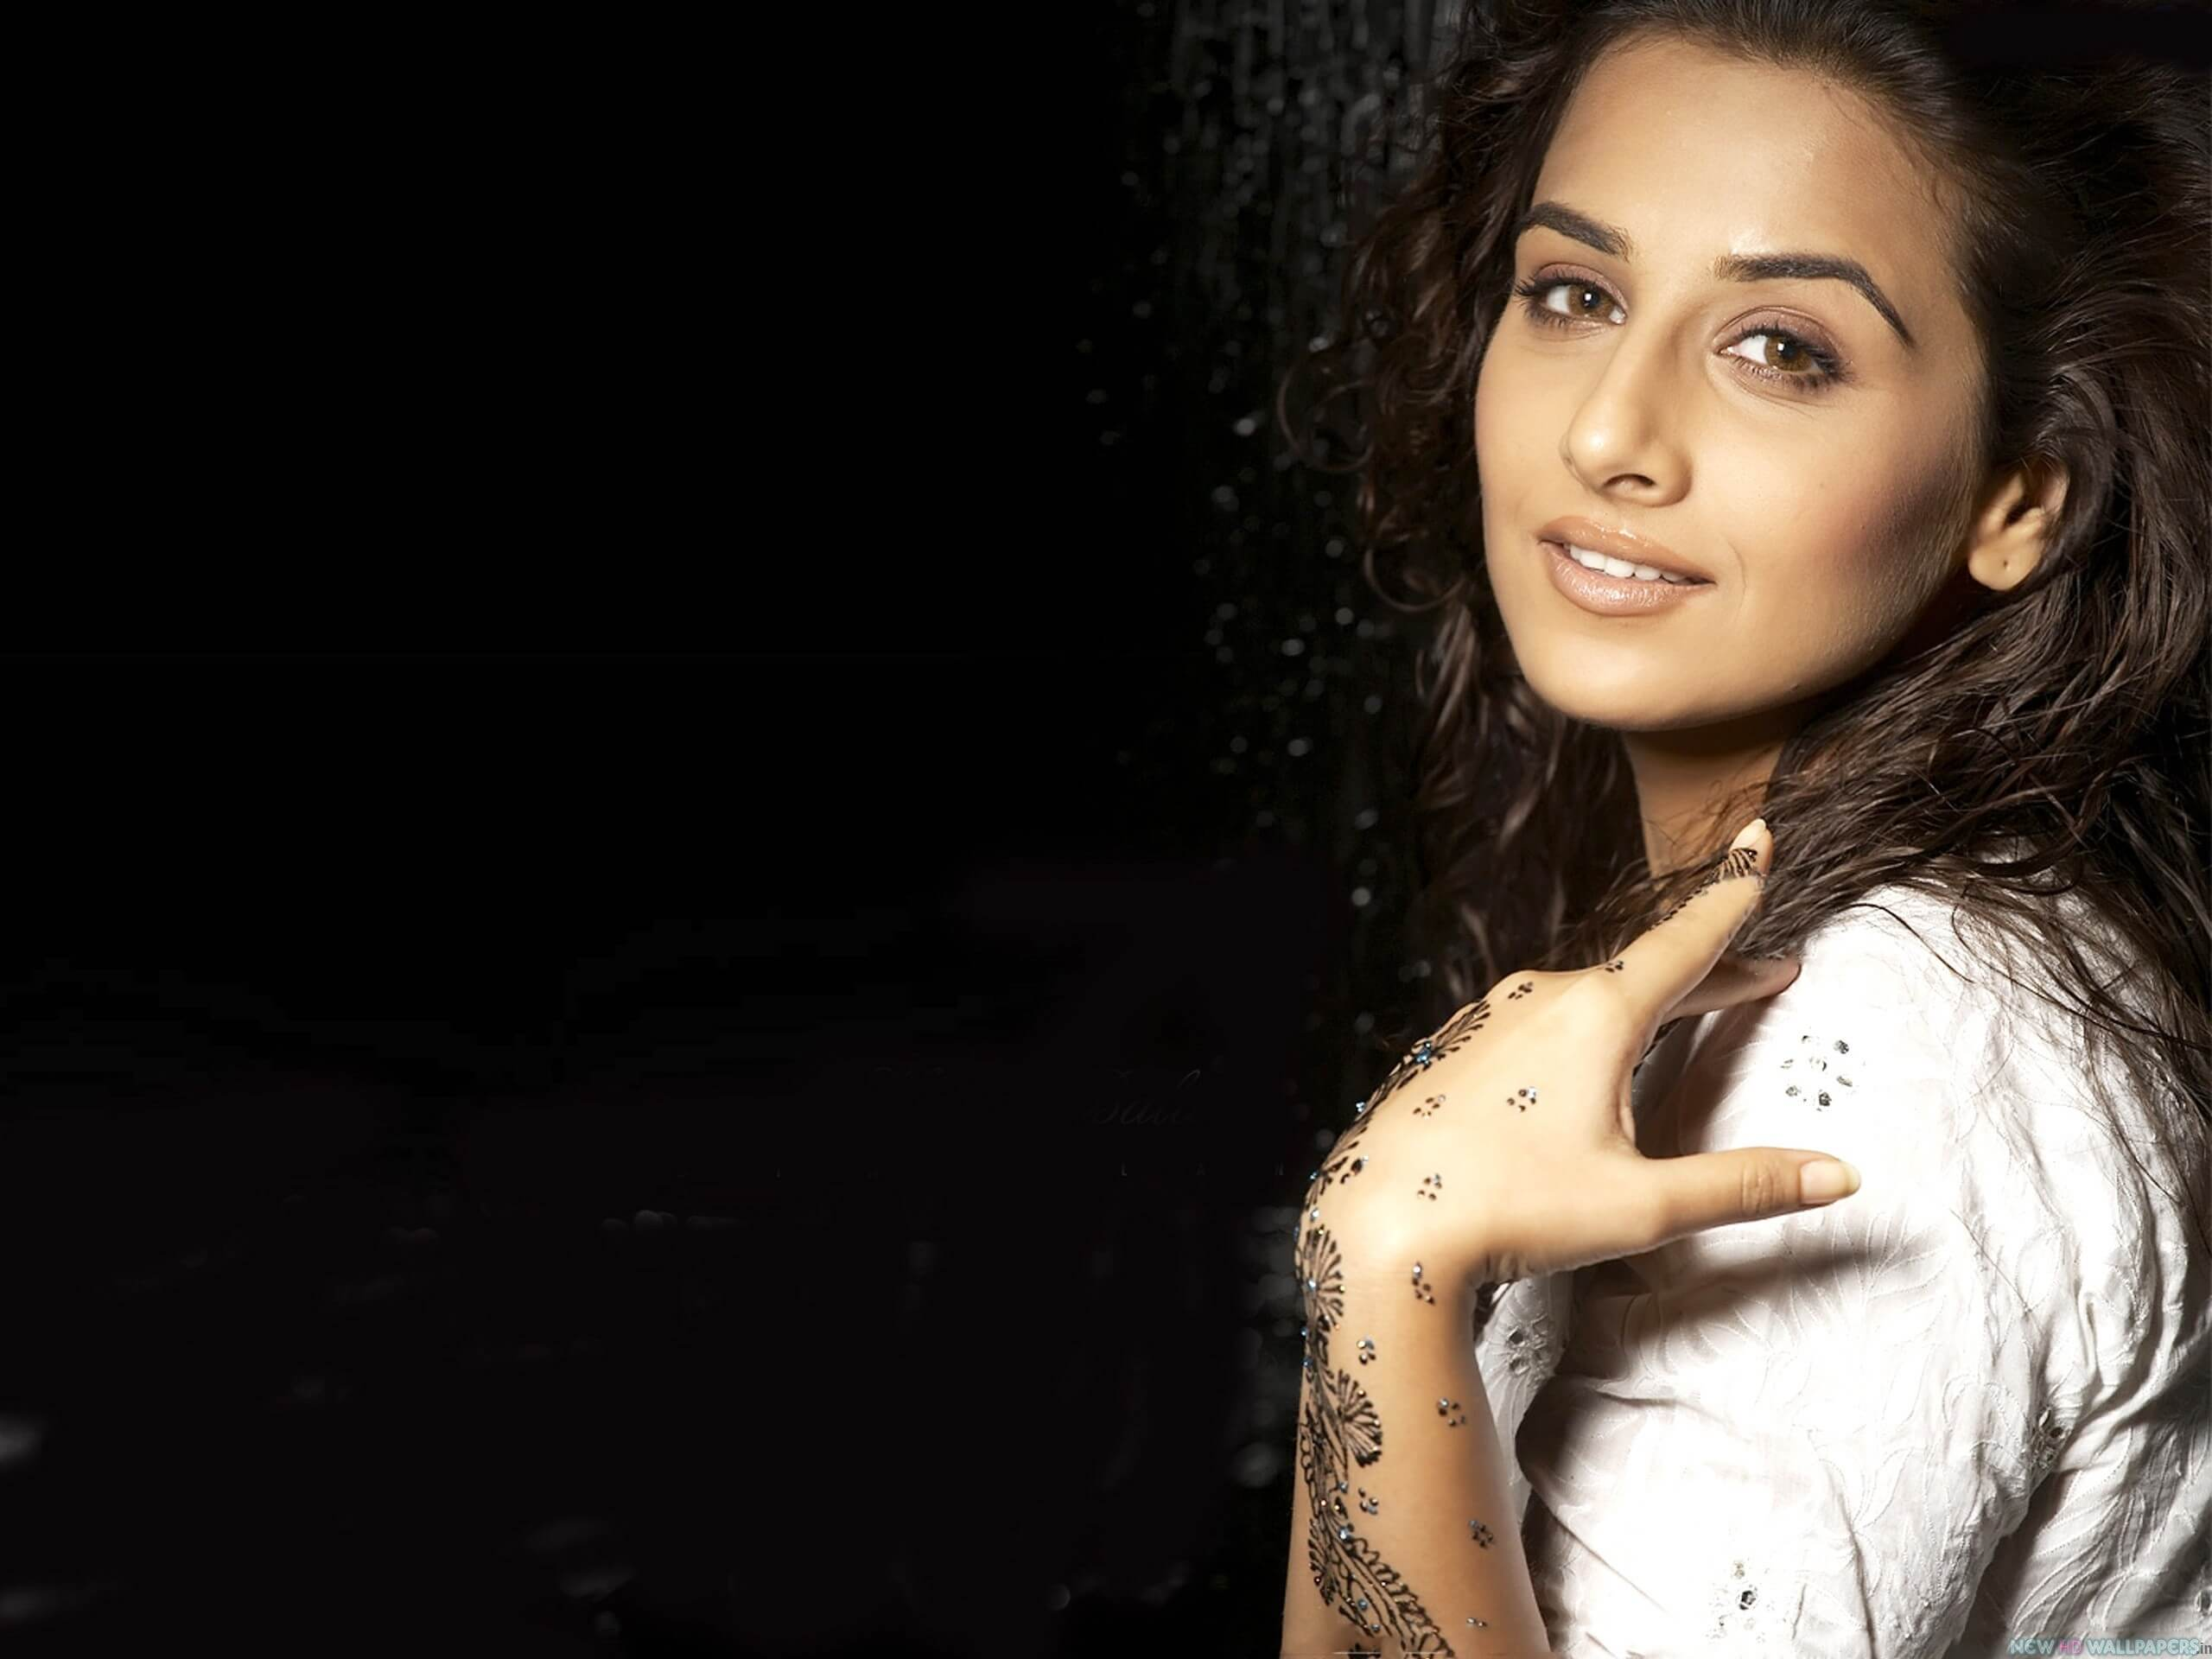 Vidya Balan Husband, Age, Child, Sister, Family, Biography, Height, Date Of Birth, Net Worth, Marriage, Wallpapers, Birthplace, Awards, Education, Details, Instagram, Wiki, Twitter, Facebook, Imdb (5) (1)